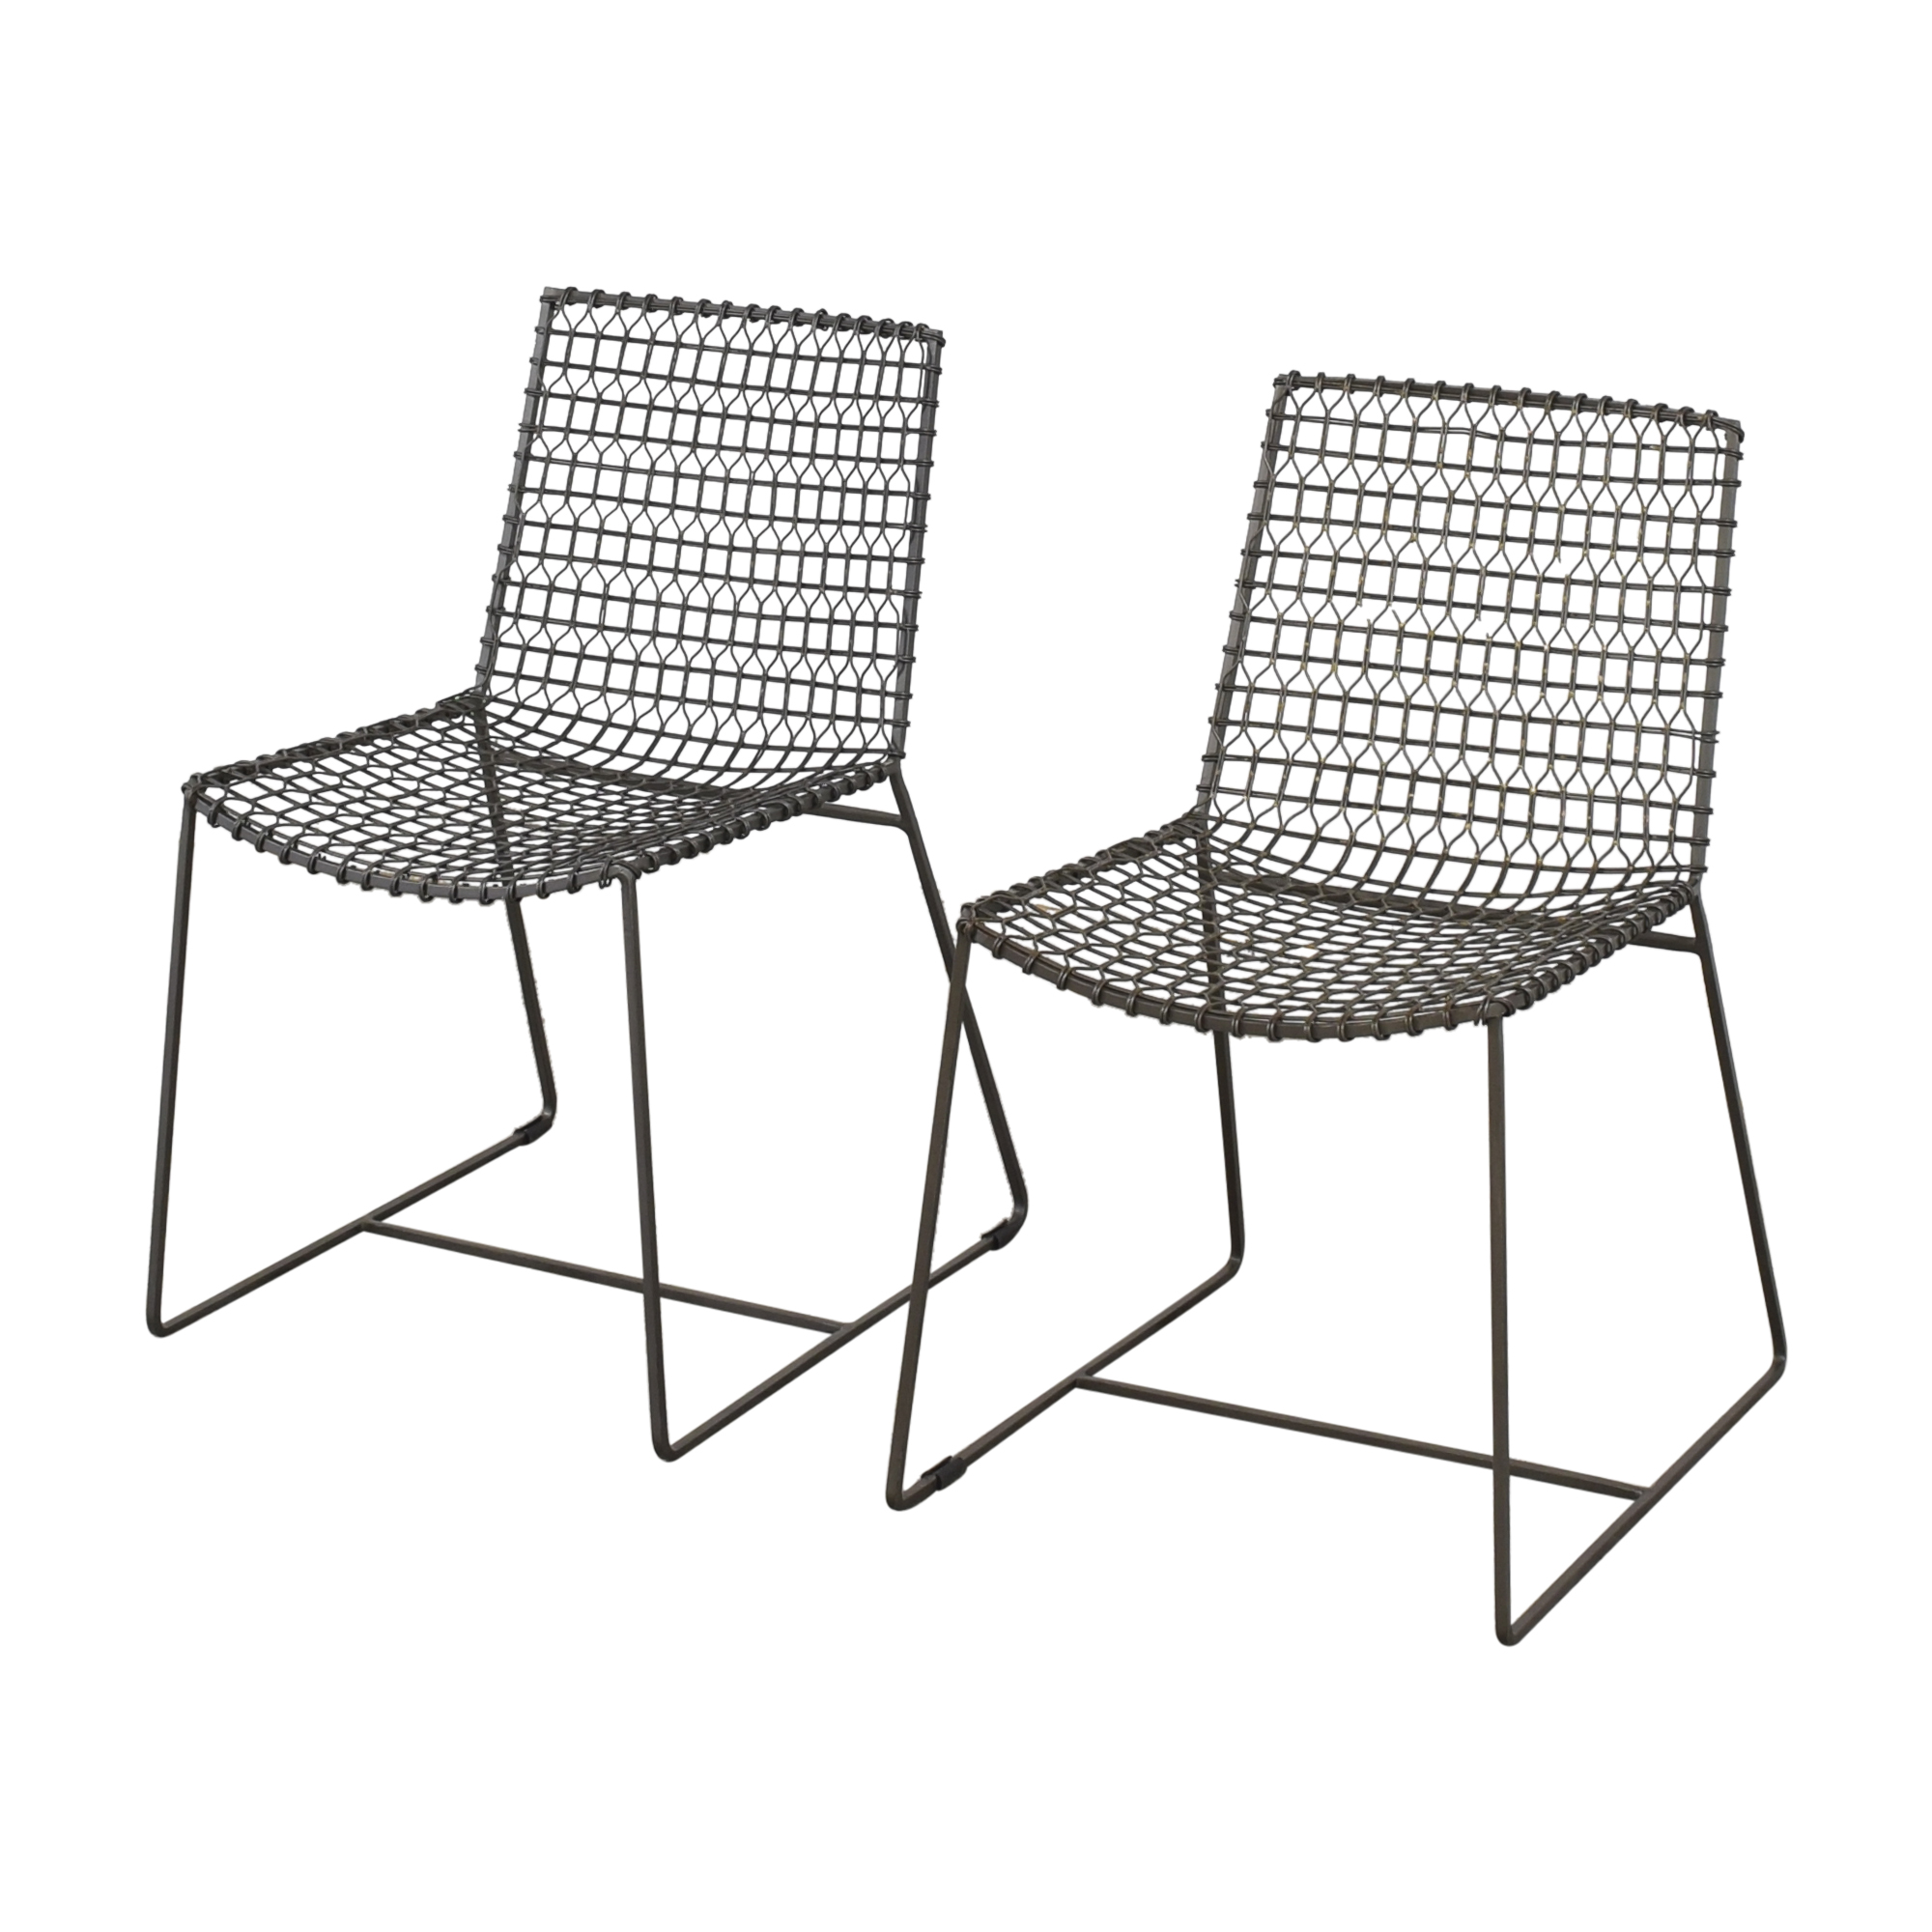 Crate & Barrel Tig Dining Chairs sale